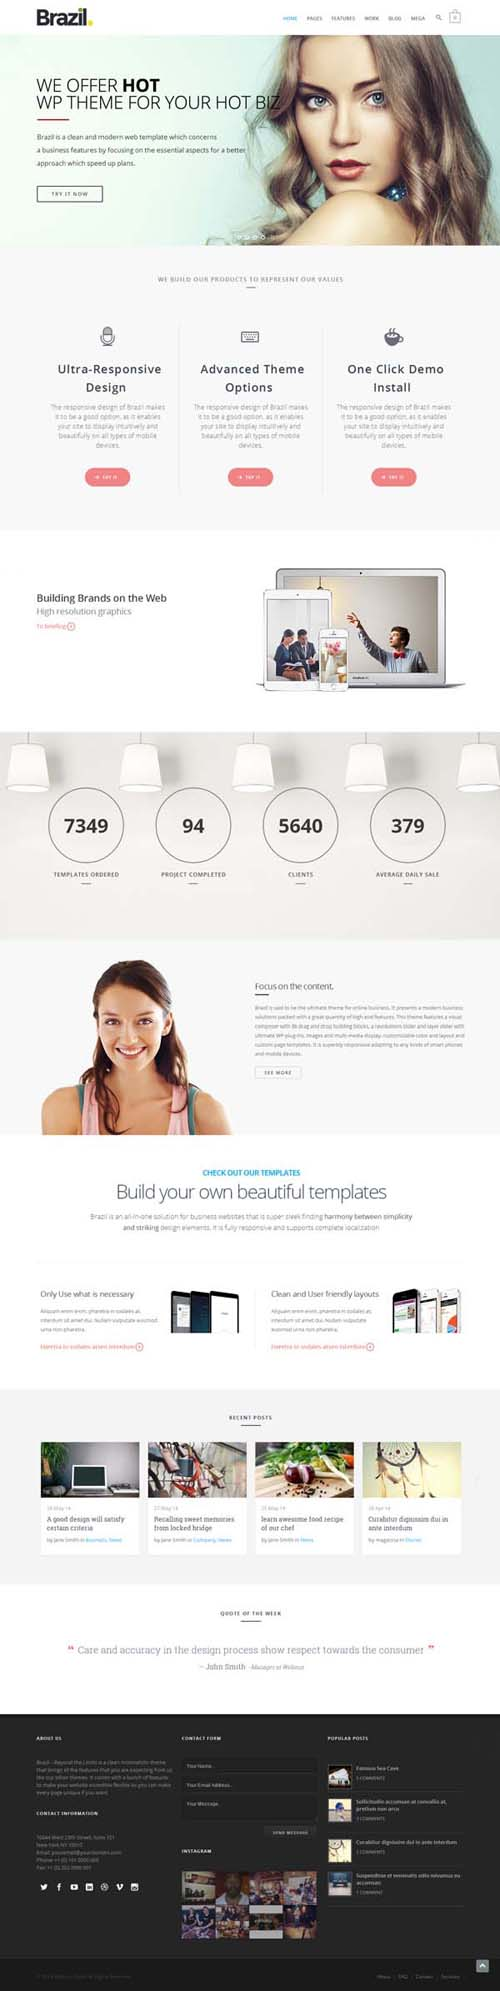 Brazil – WordPress Theme